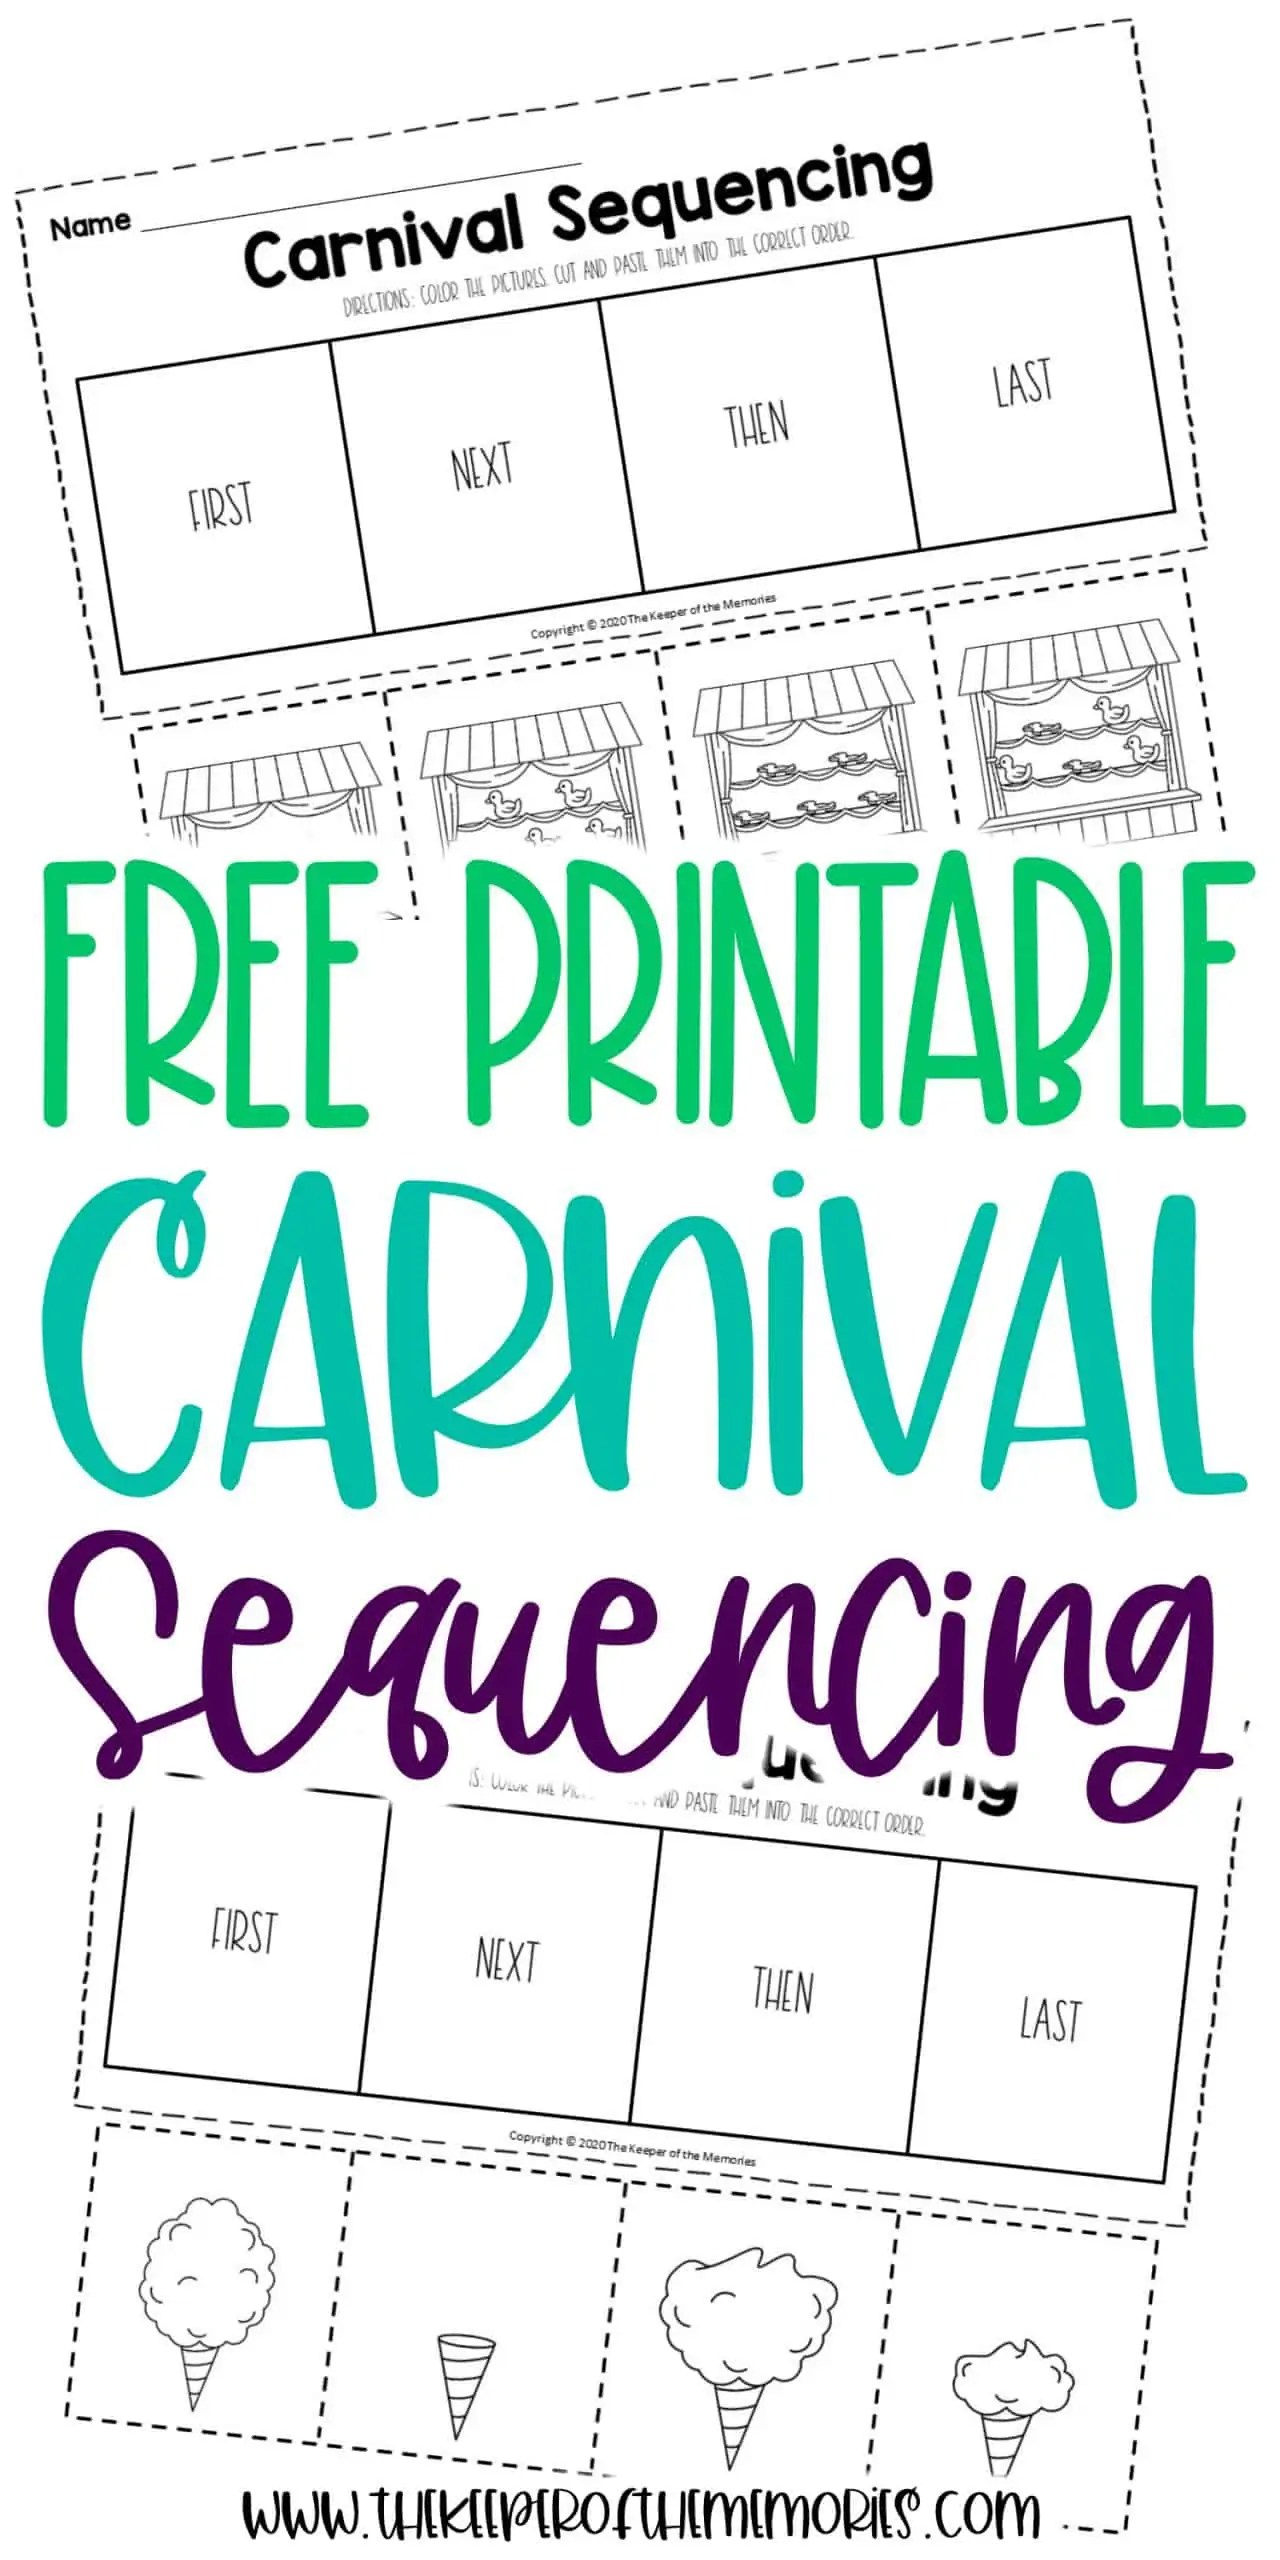 Carnival Sequencing Worksheets